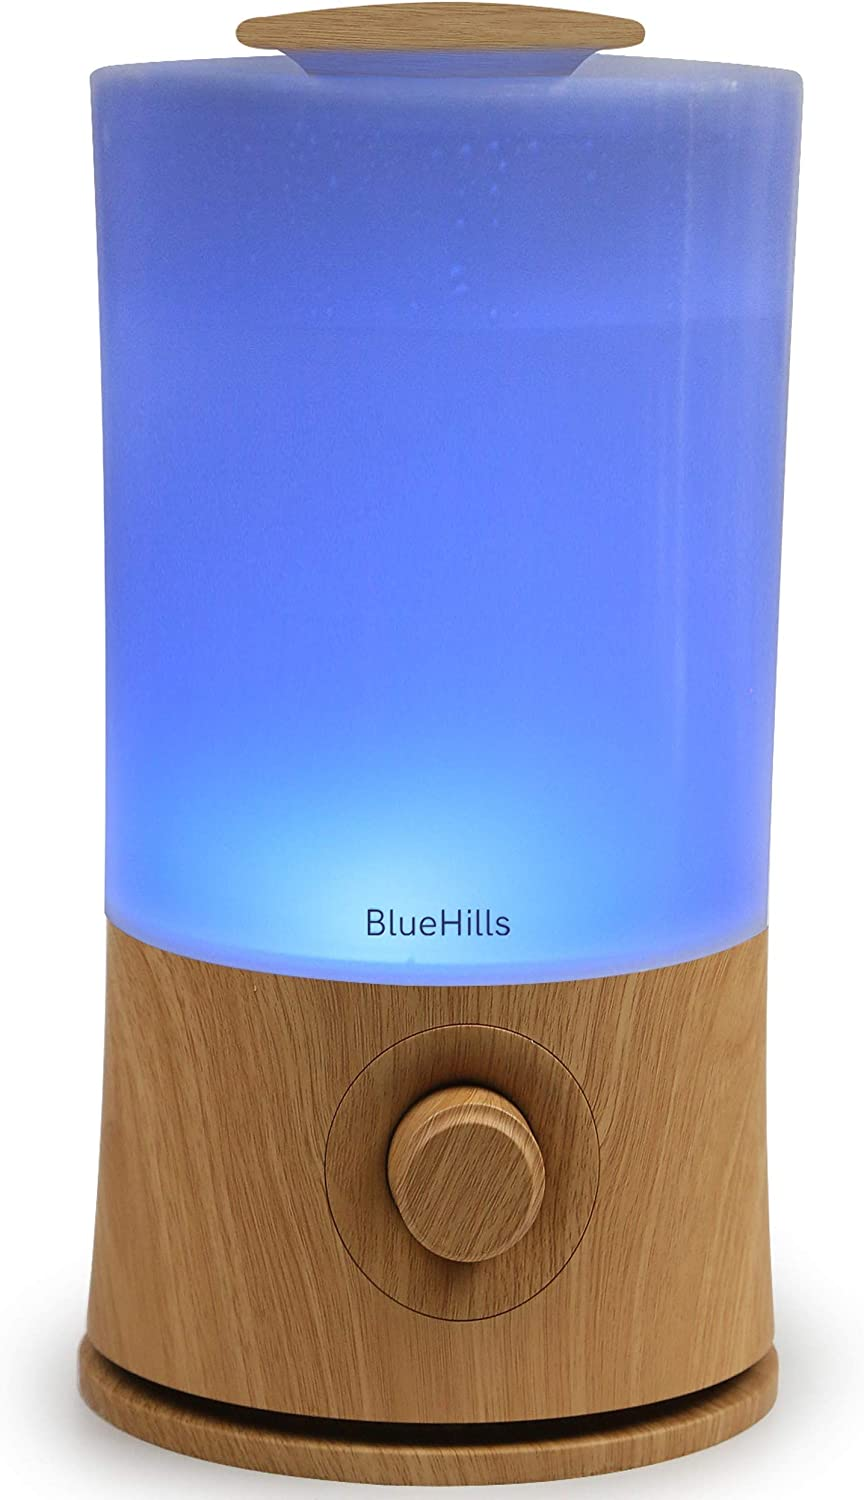 BlueHills Premium 2000 ML XL Large Essential Oil Diffuser Aromatherapy Humidifier for Large Room Home 40 Hour Run Huge Coverage Area 2 Liter Extra Large Capacity Huge Diffuser Wood Grain E005